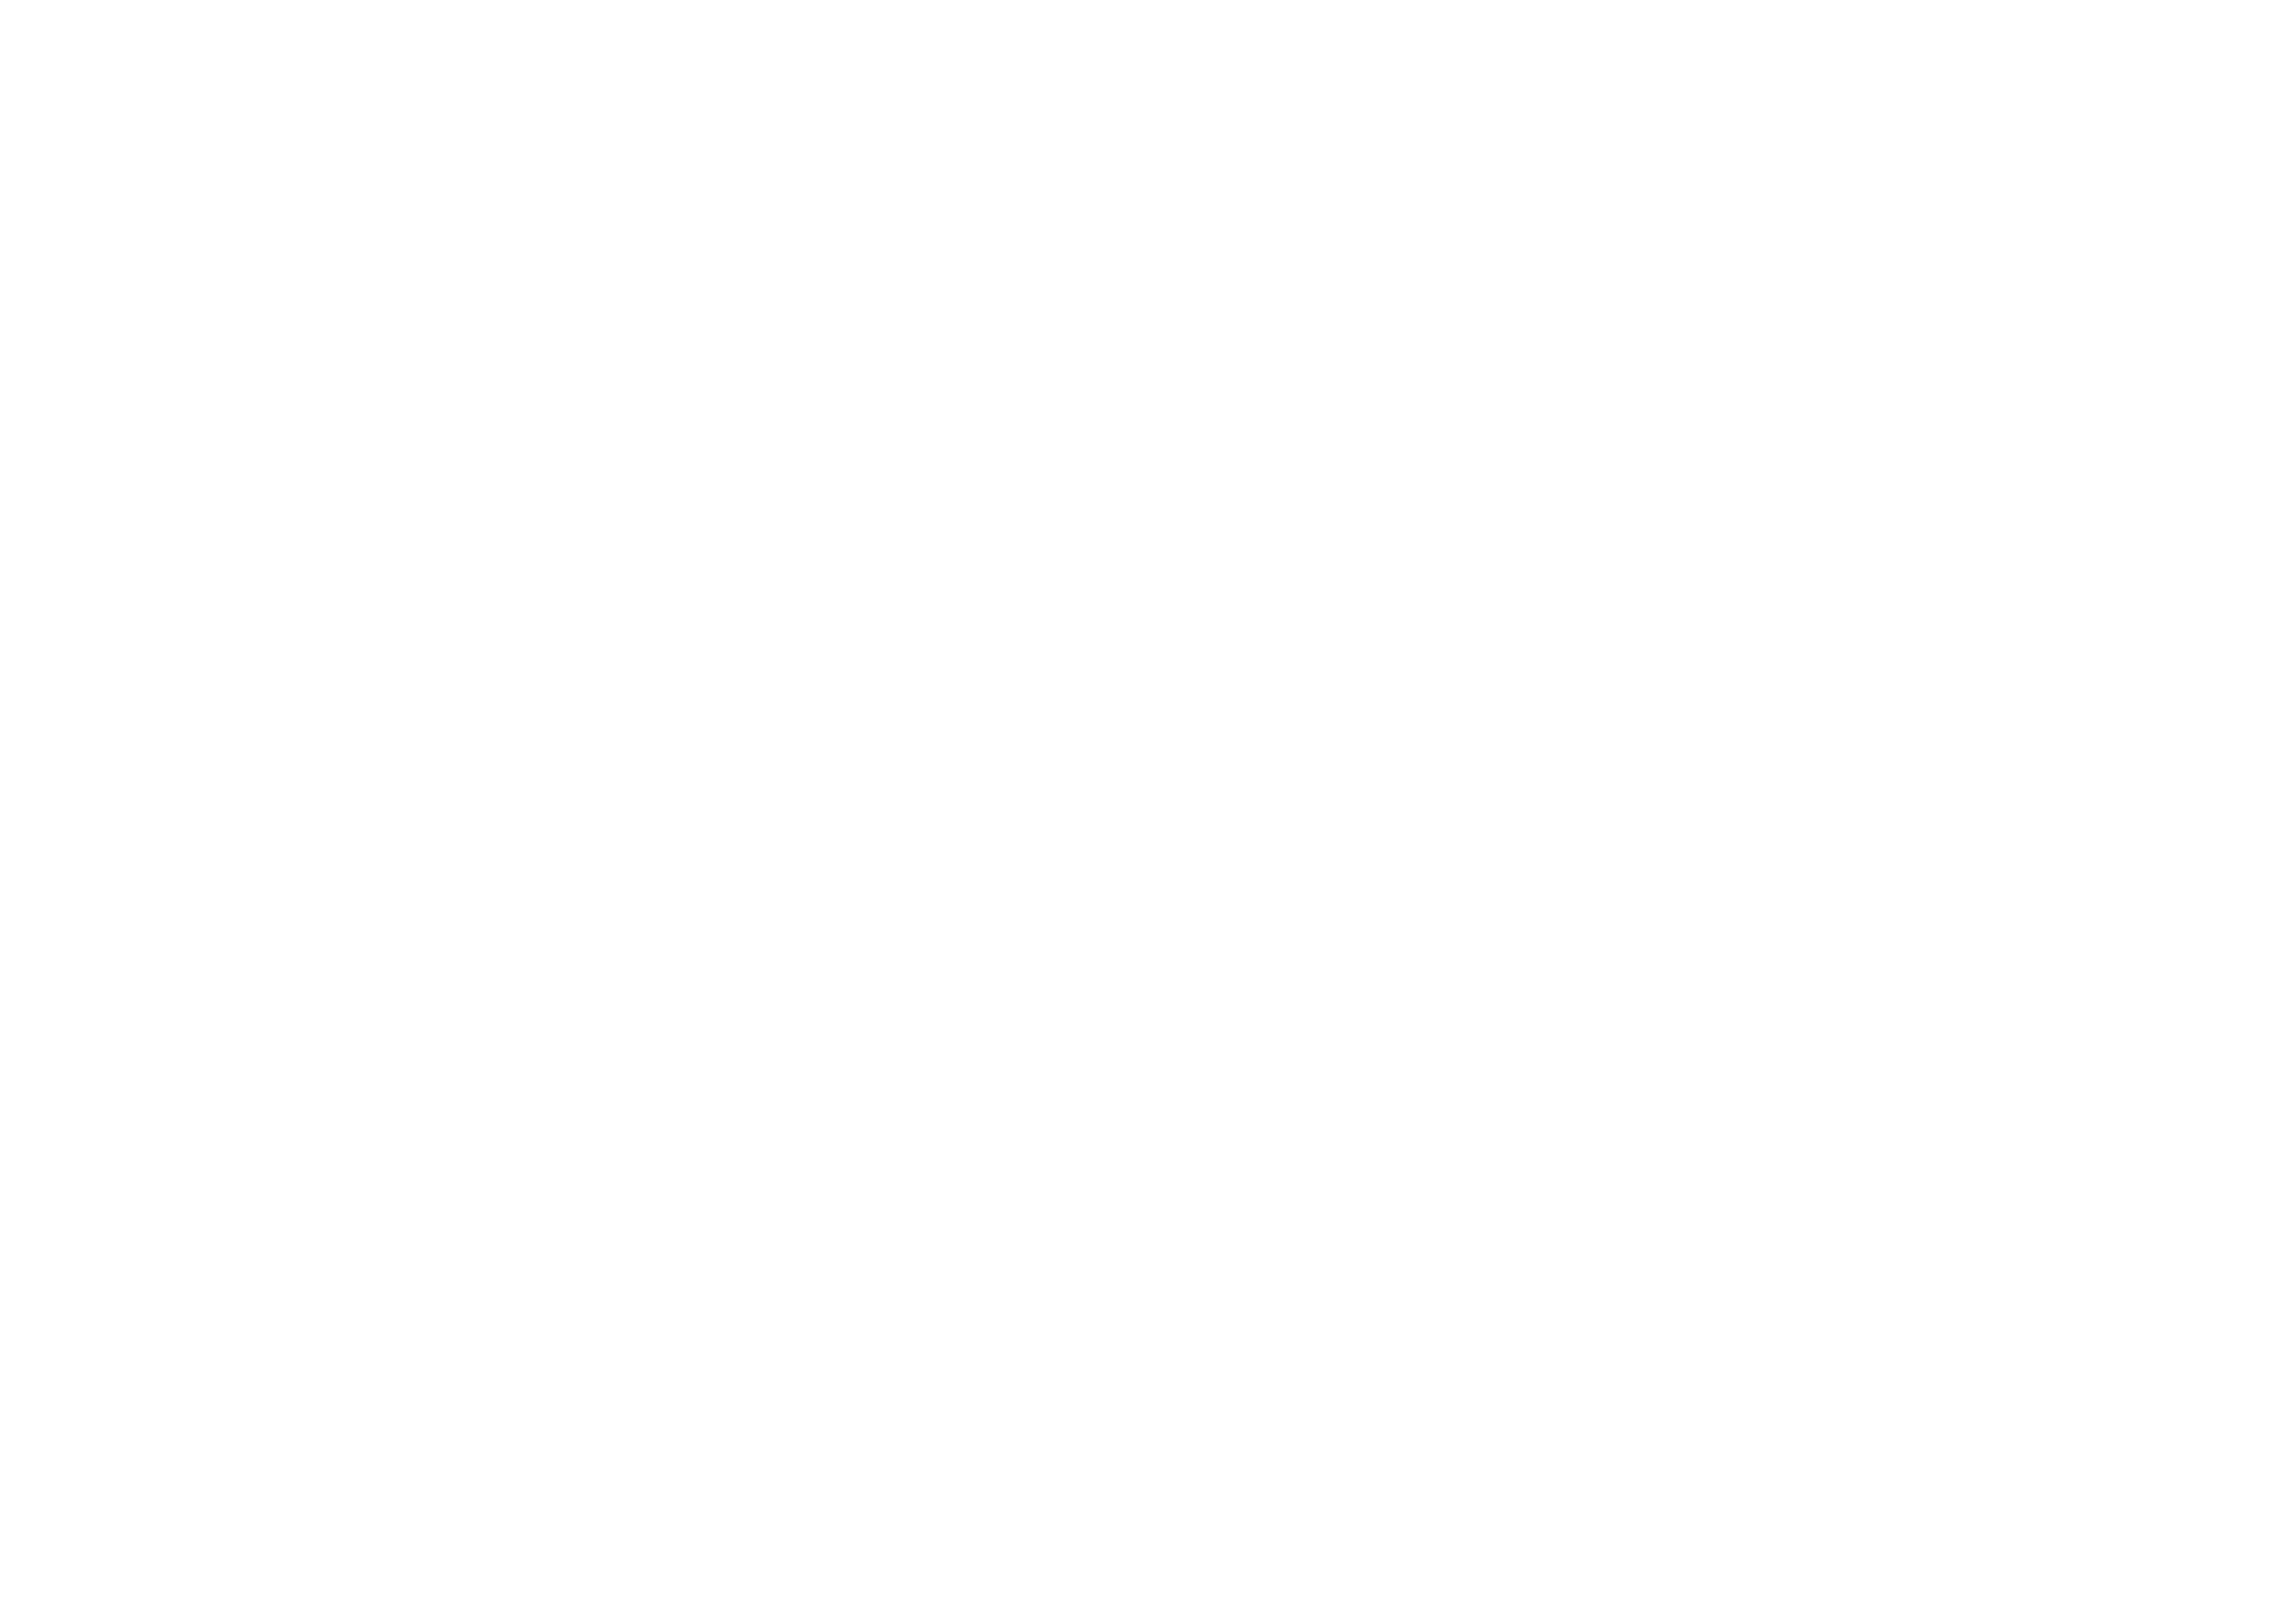 Story Group-logo-white (2).png